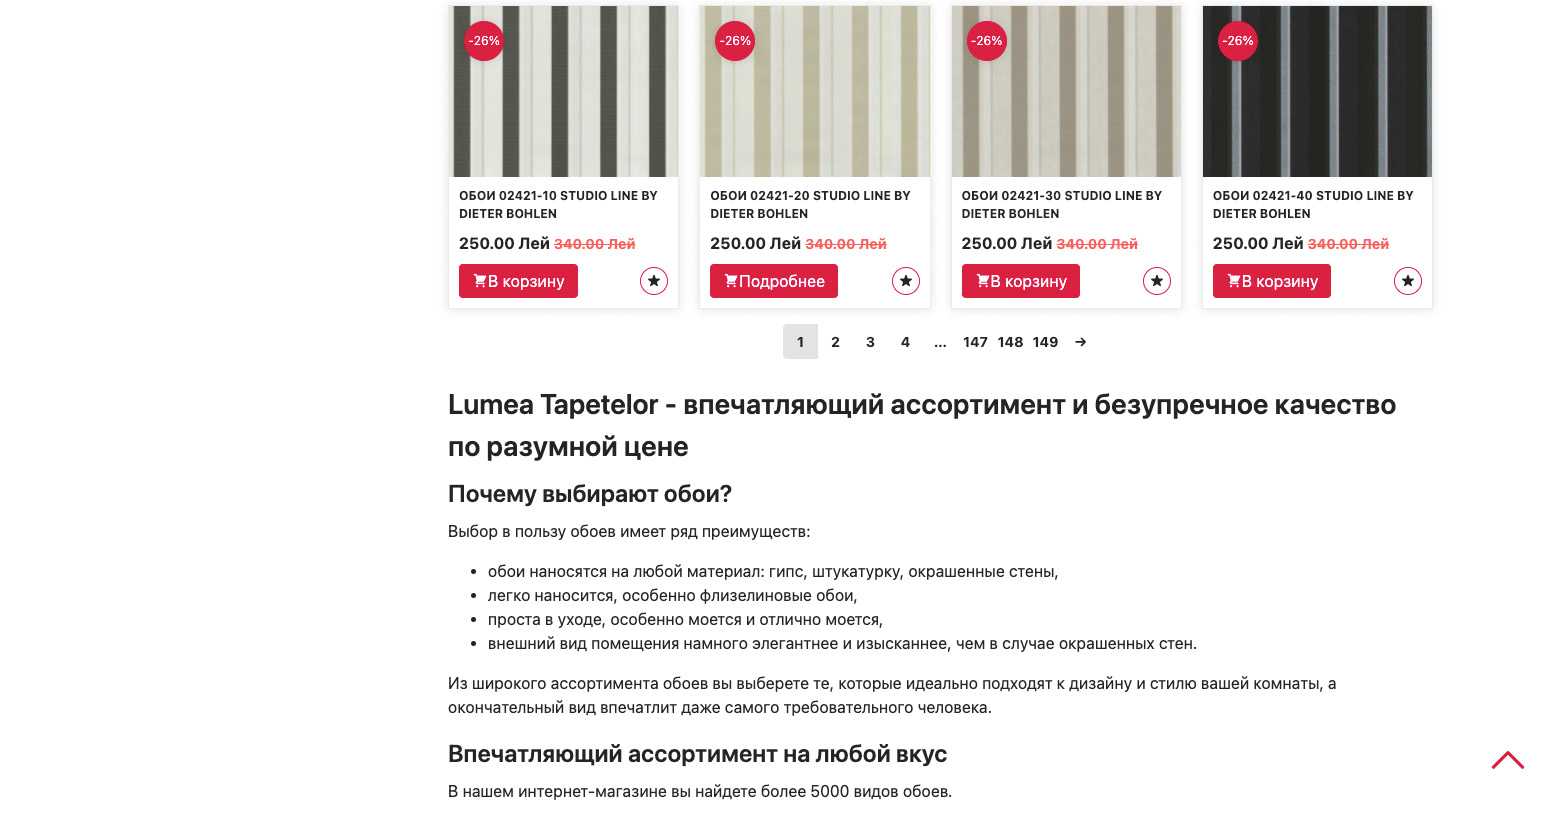 Redesign of the online store Lumea Tapetelor 15